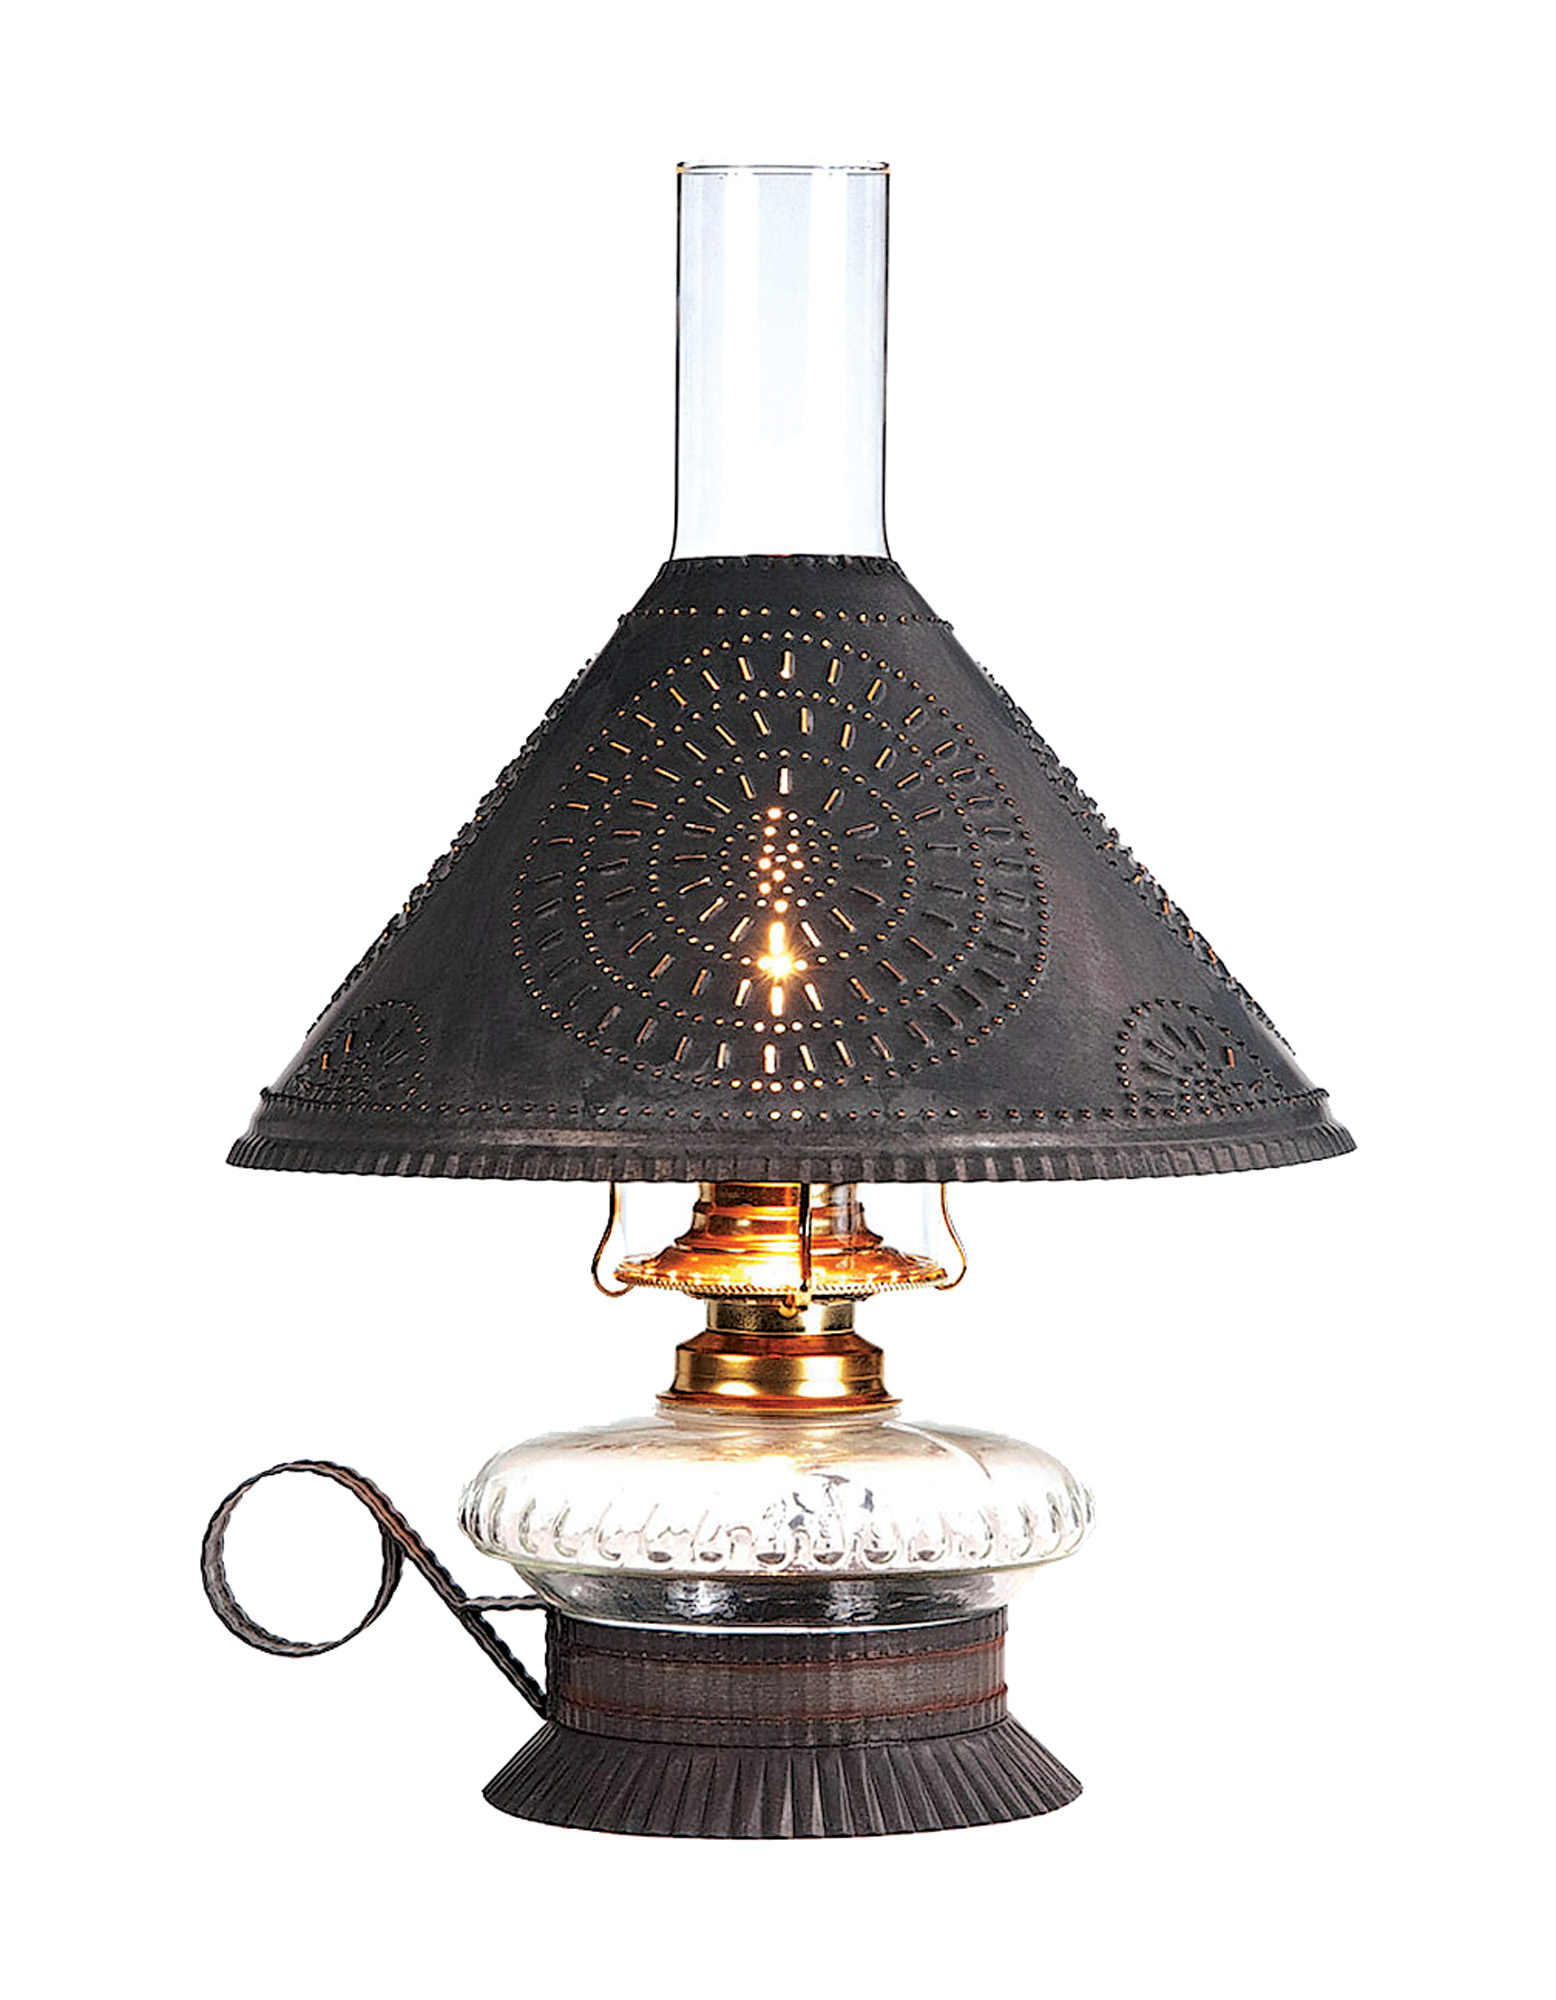 With a chisel-punched shade and glass reservoir base, House of Antique Hardware's Electrified 'Cupid' lamp is a revival of an authentic oil lamp design.